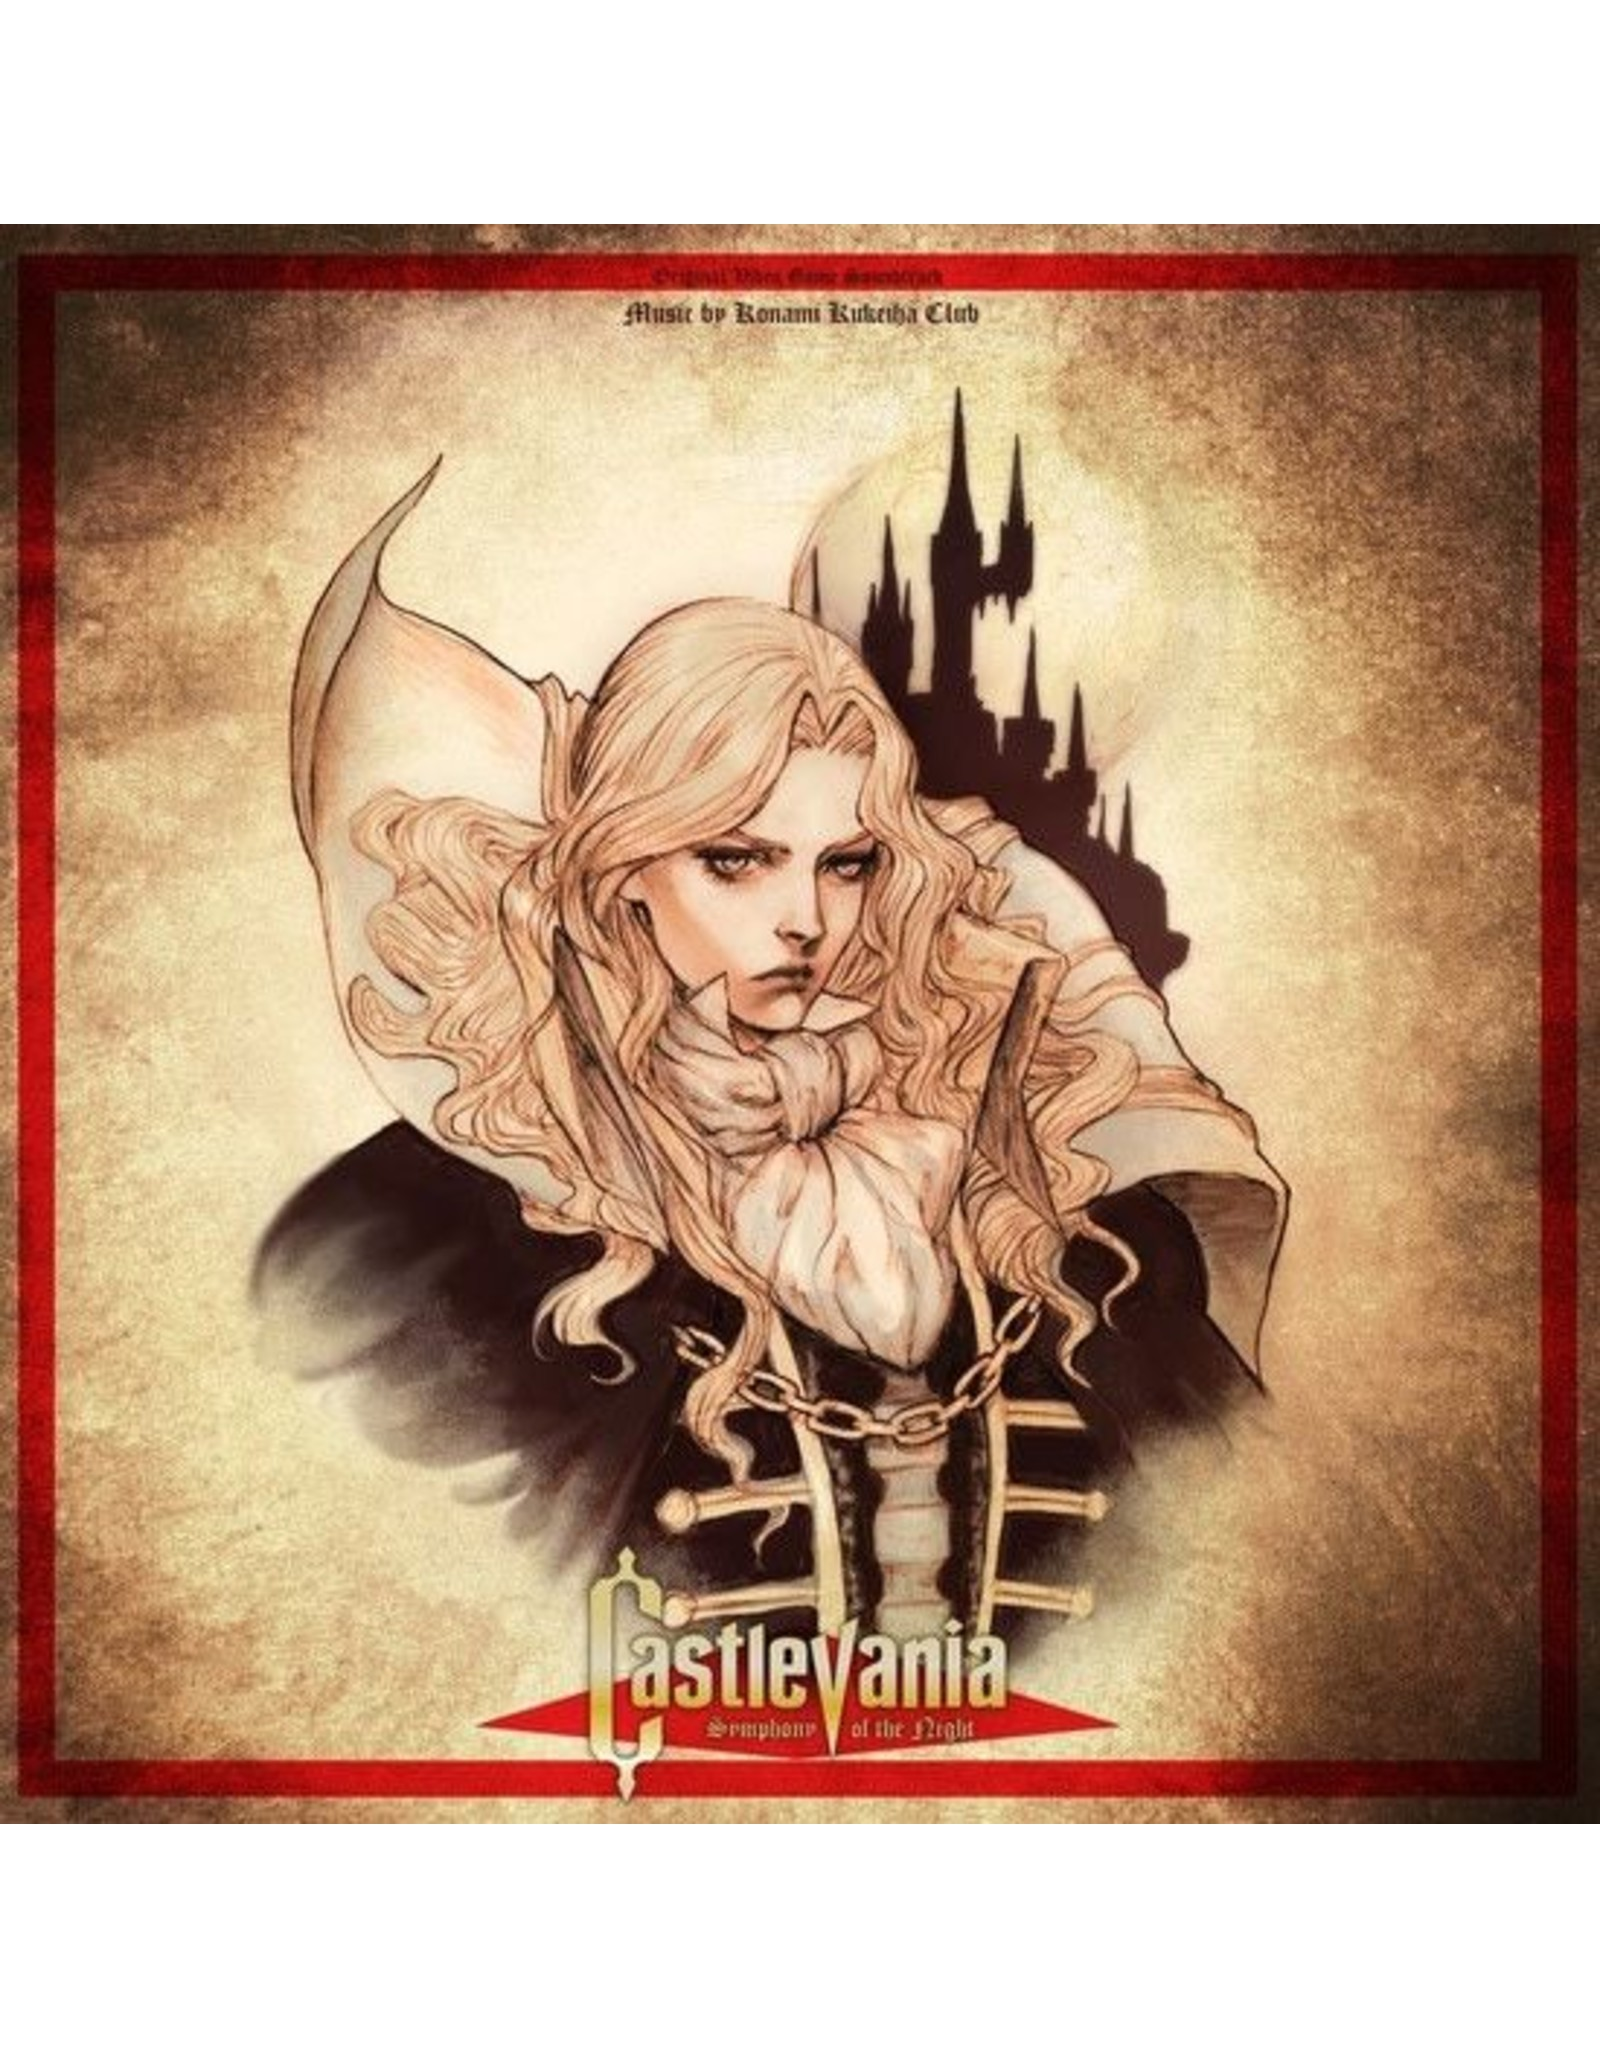 Mondo Castlevania: Symphony of the Night LP